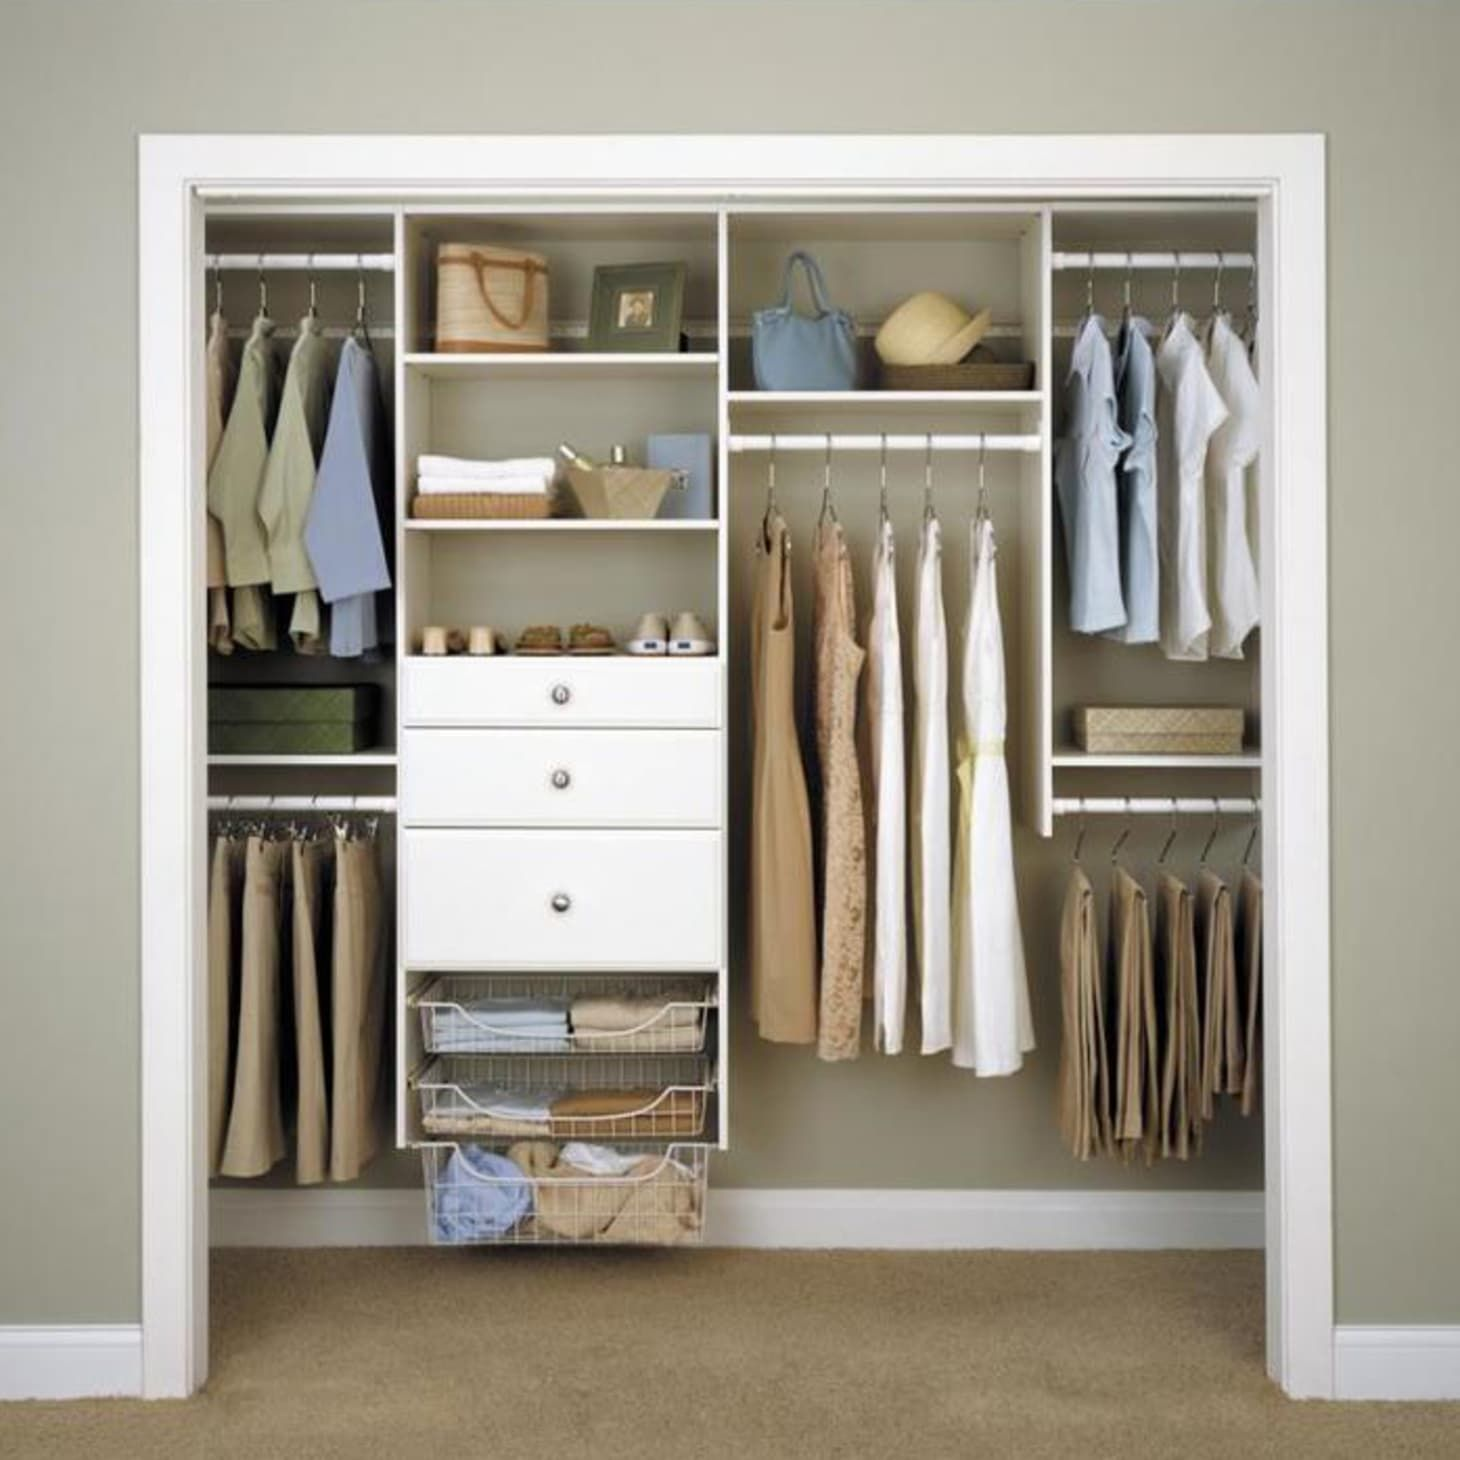 Best Closet Systems The Best Closet Systems Things To Make Patterns Instructions